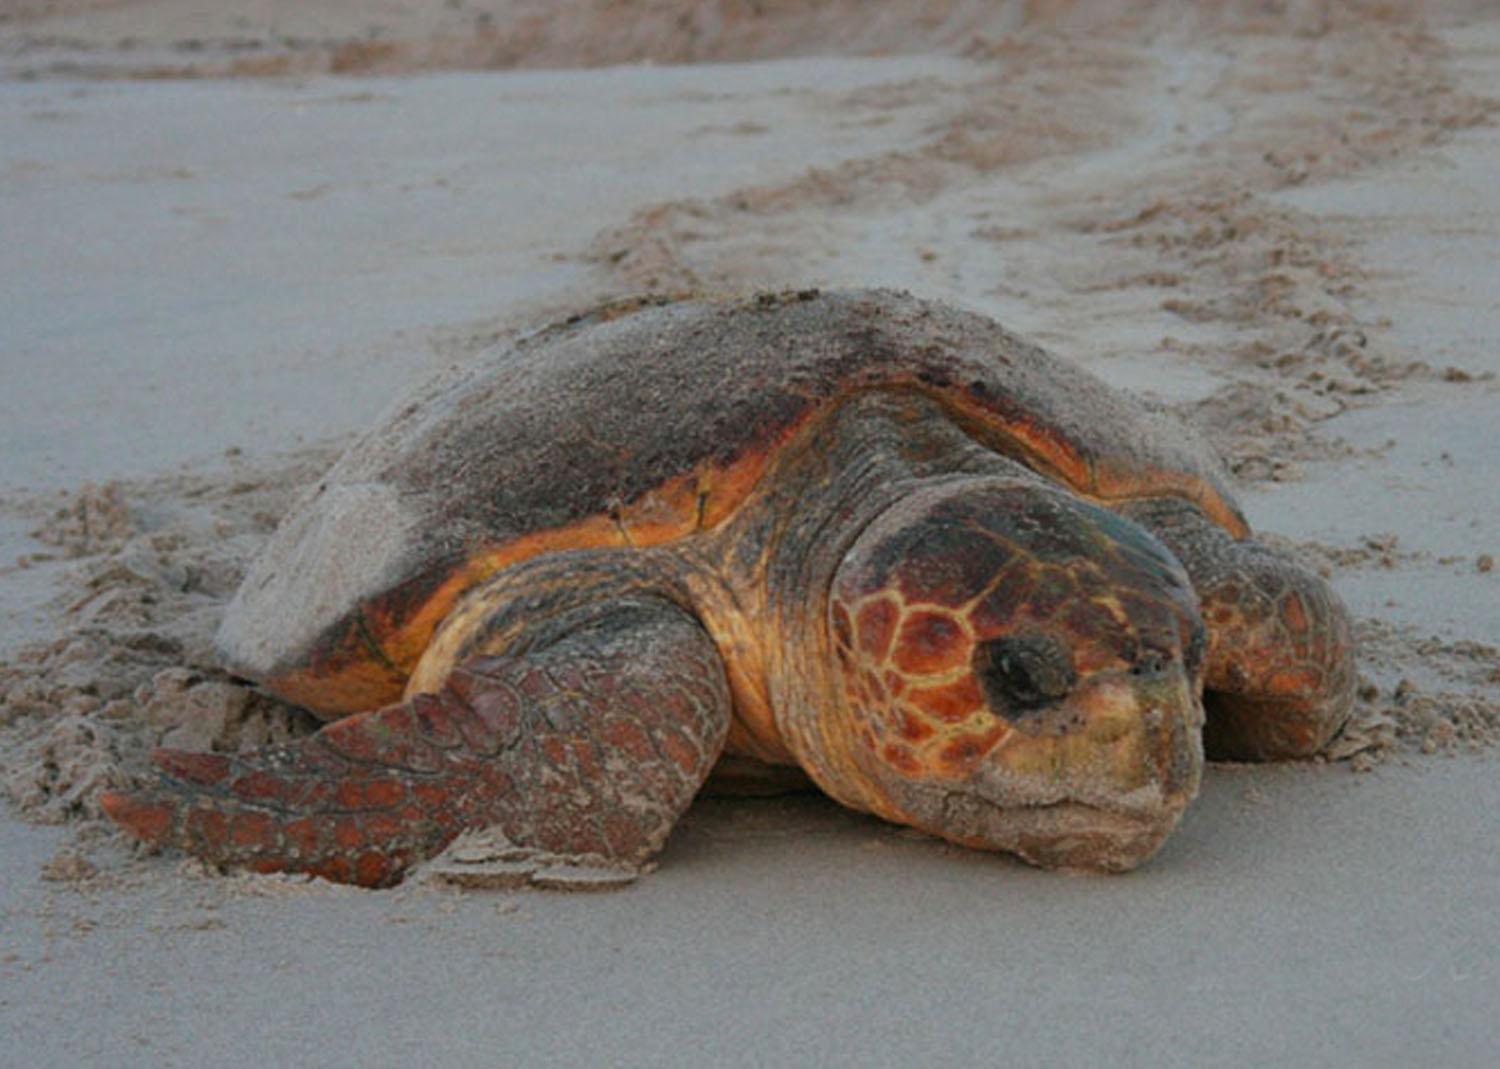 The Loggerhead's Ecosystem Benefits